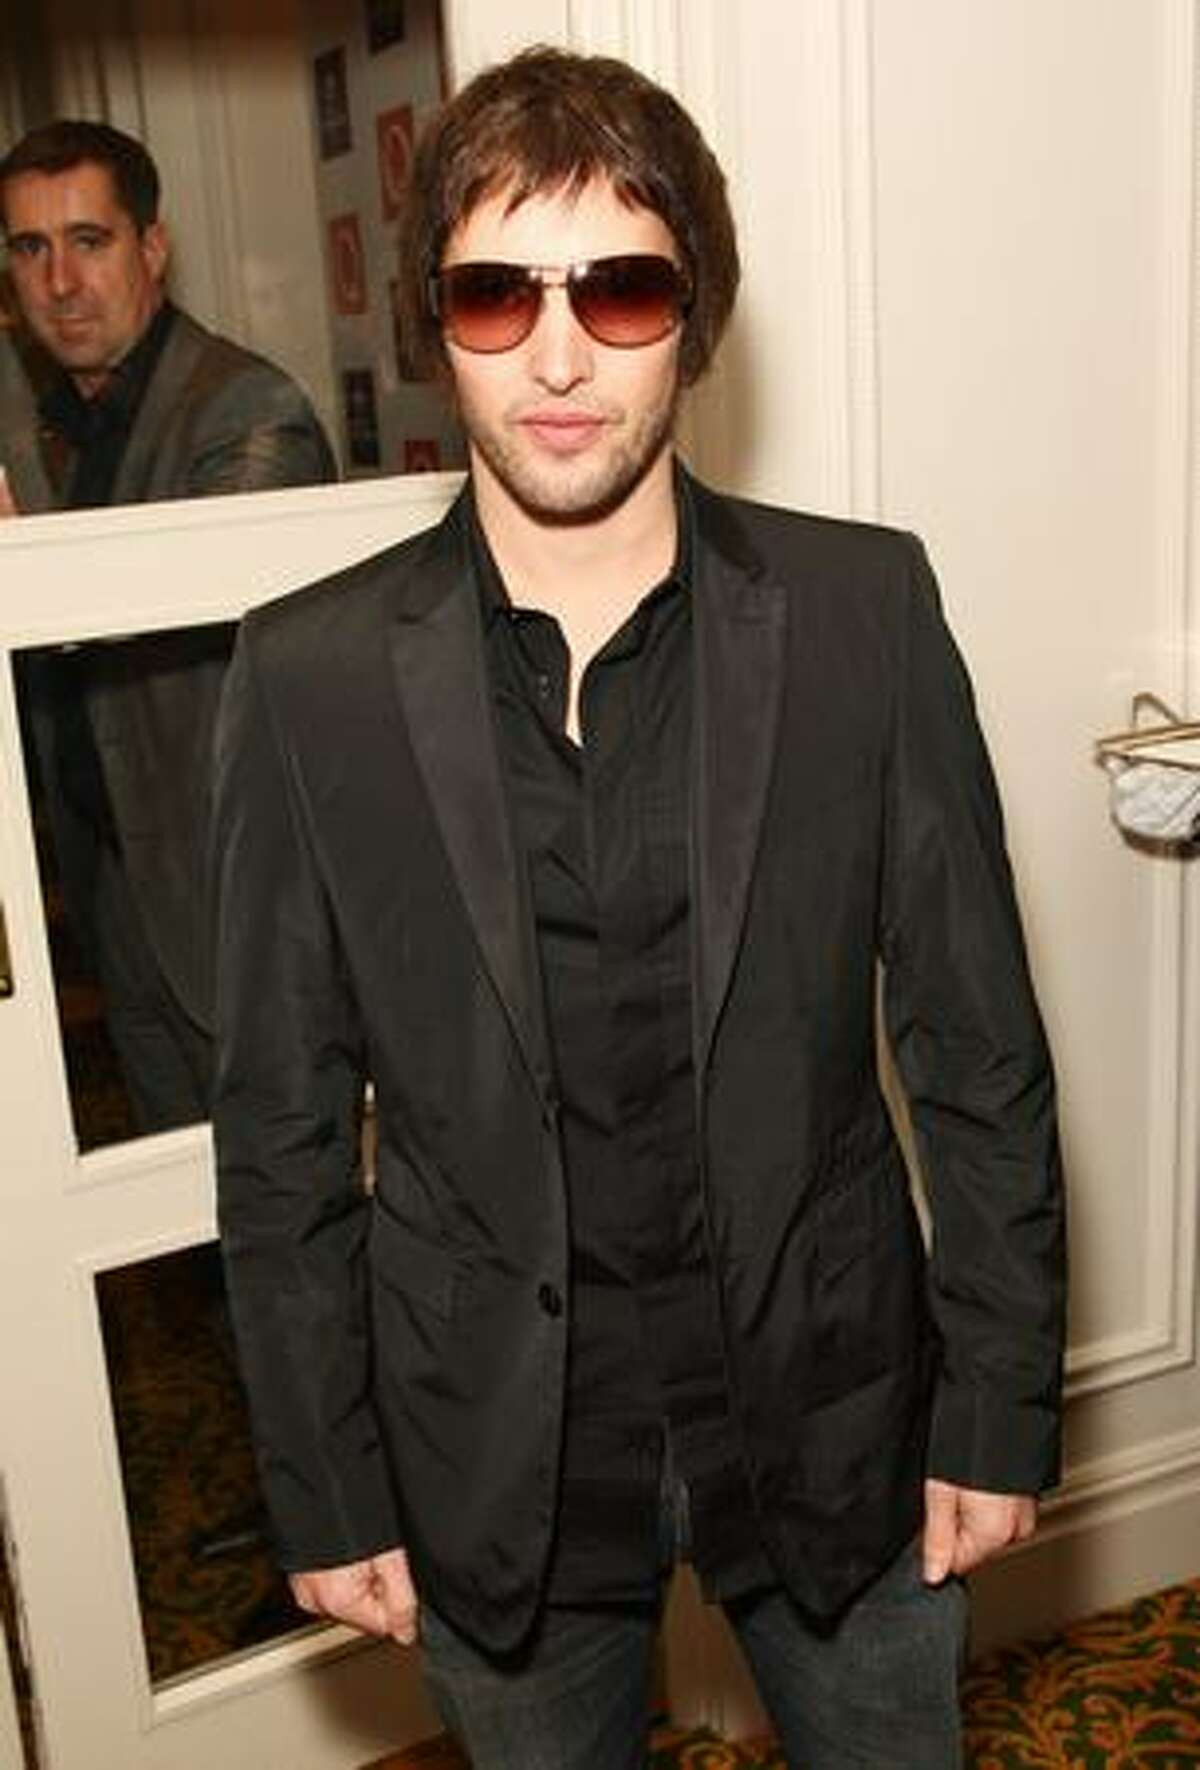 James Blunt attends the 2009 Q Awards held at the Grosvenor House Hotel in London, England.